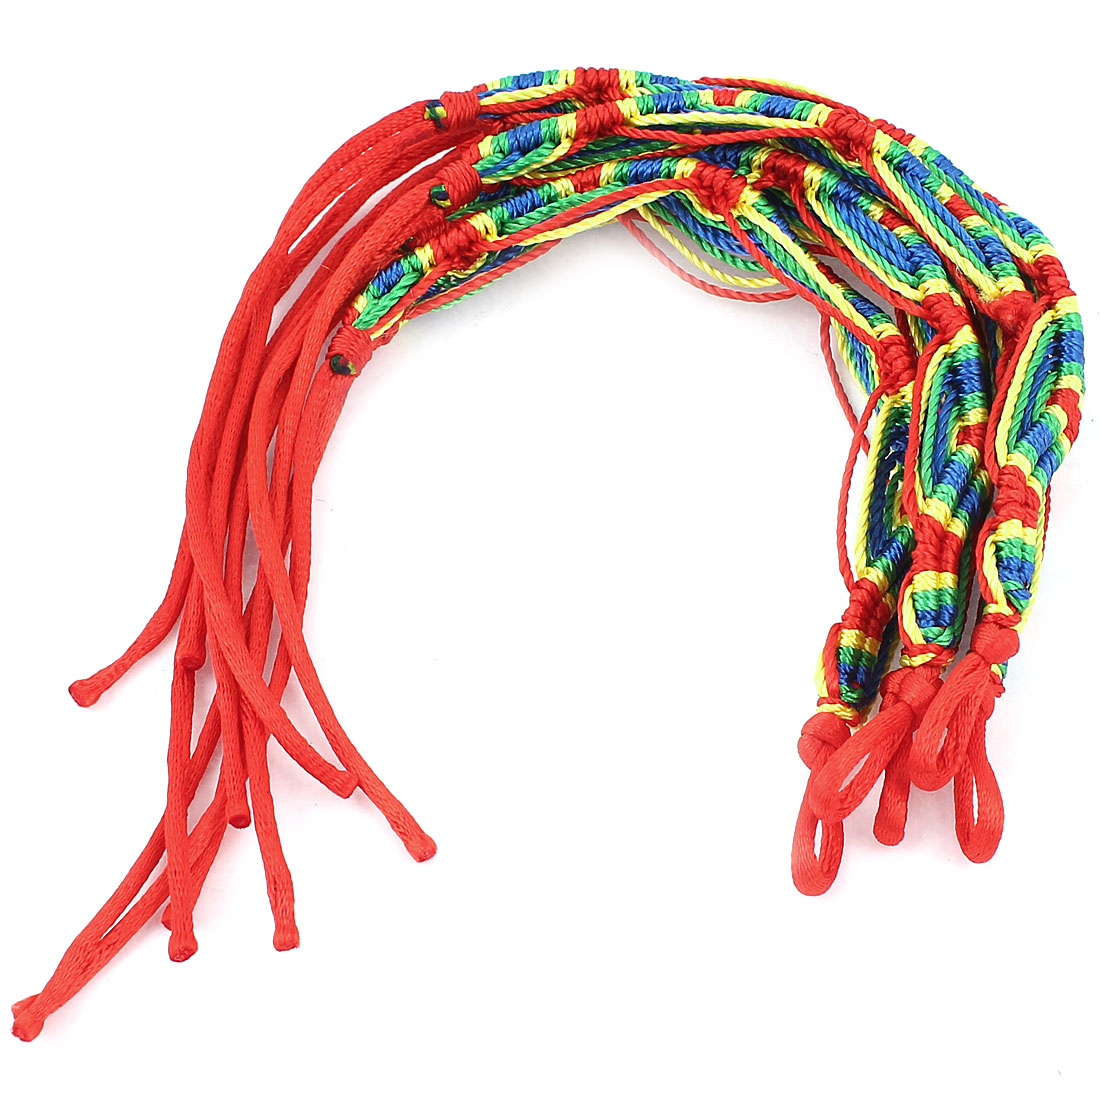 5 Pcs Red Blue Nylon Cord Handwork Braided Wrist Accent Bracelet for Lady